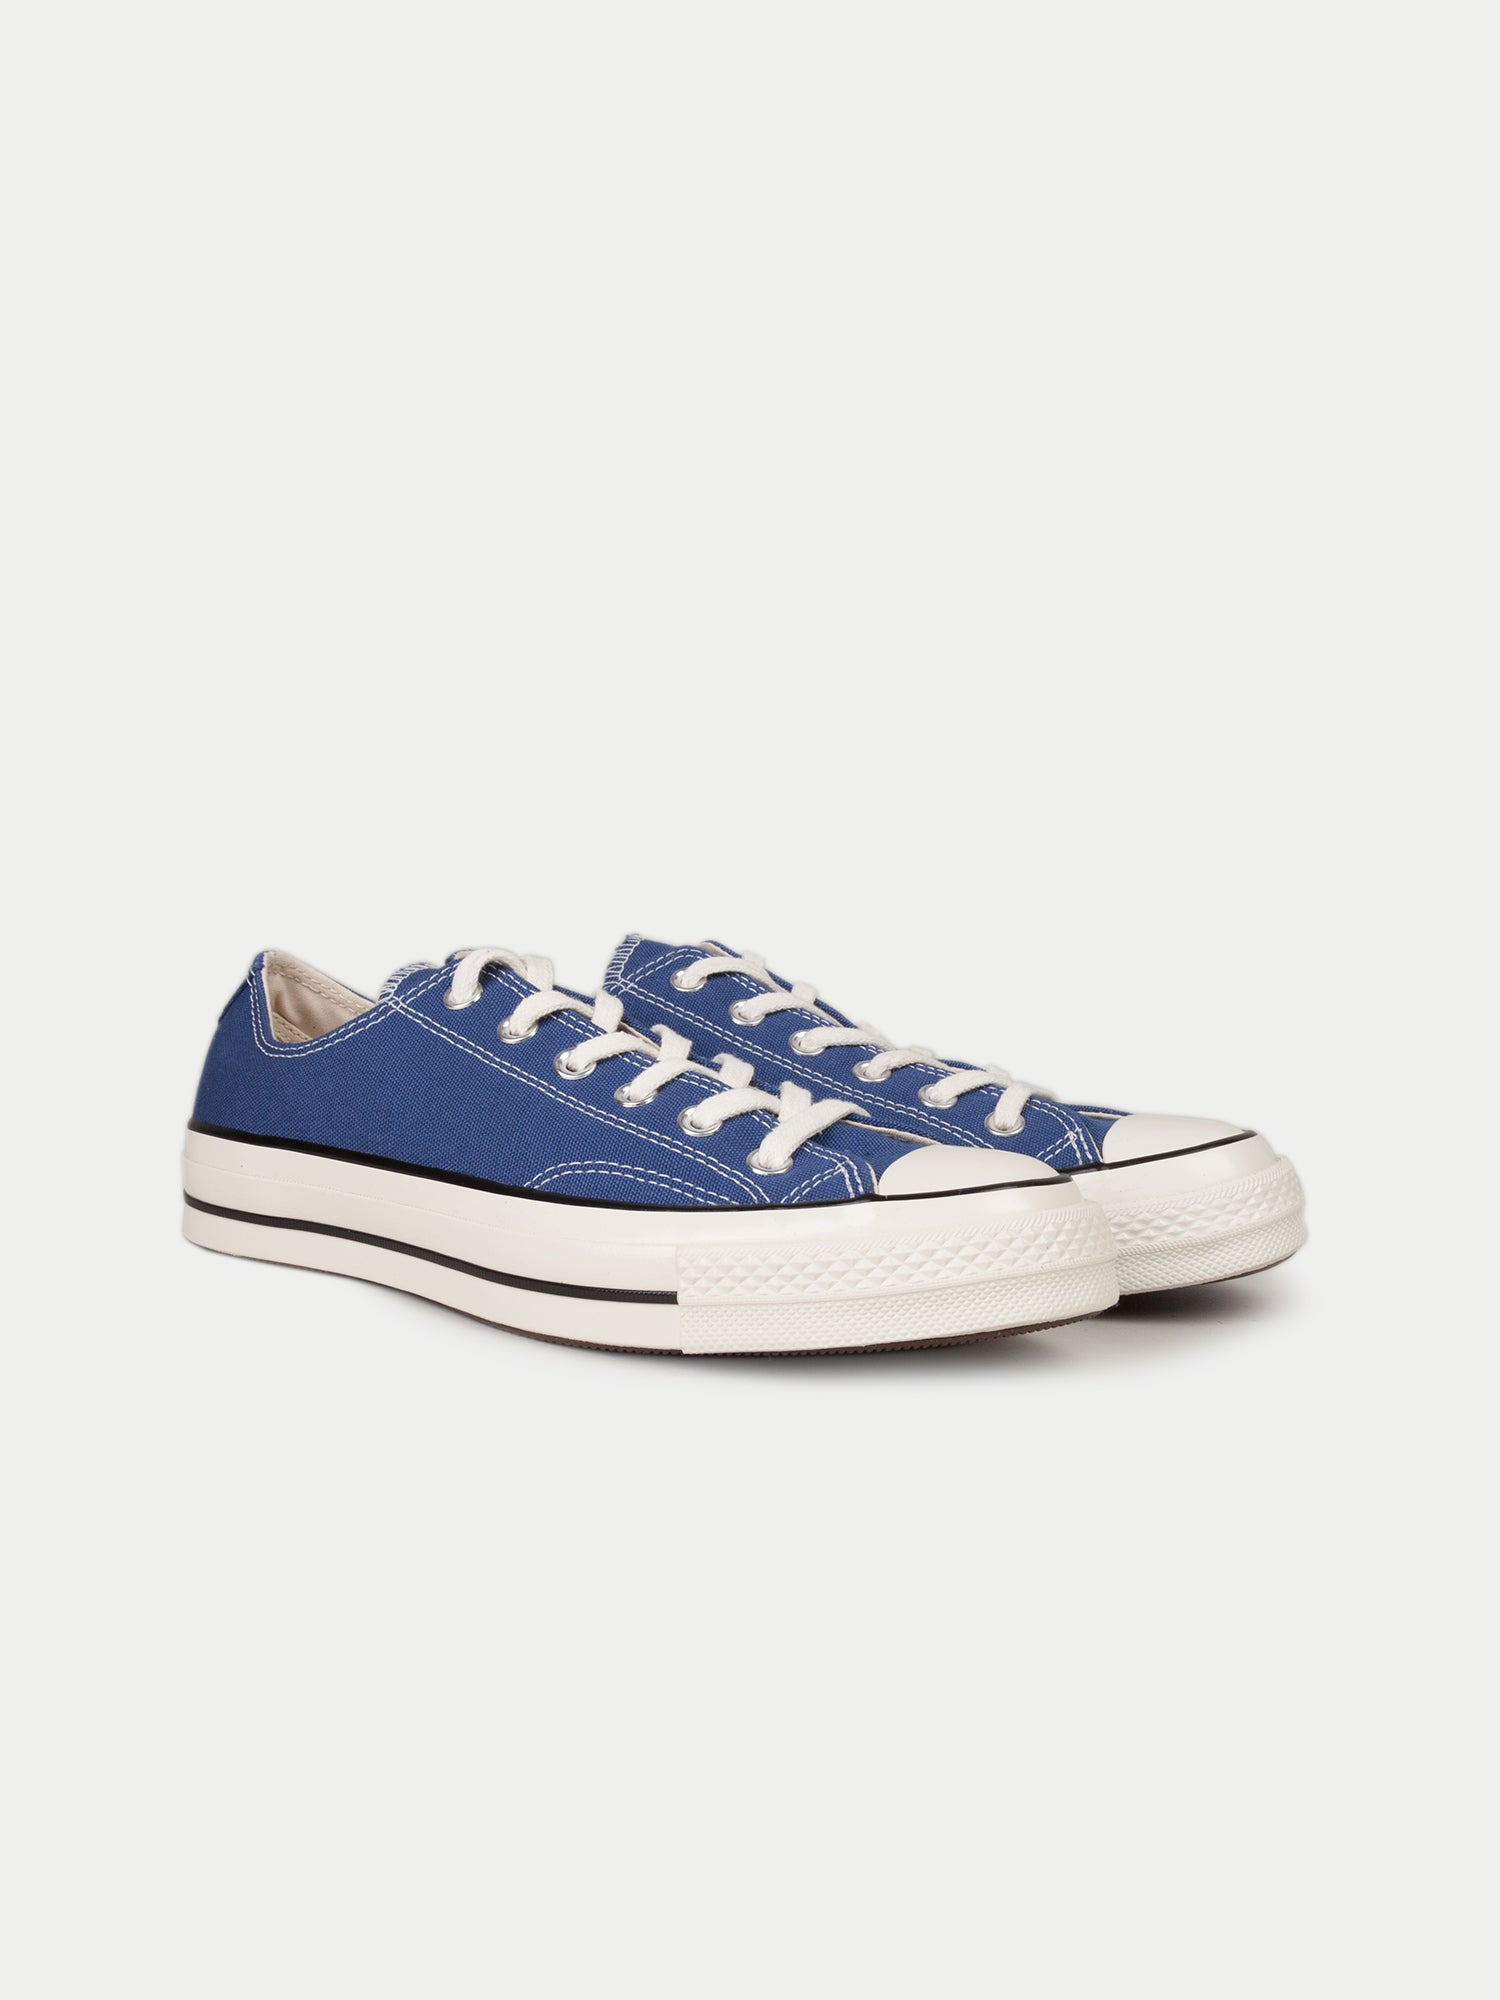 86f542d246e Converse-Chuck-Taylor-All-Star-70 -Ox- True-Navy.jpg v 1533815099